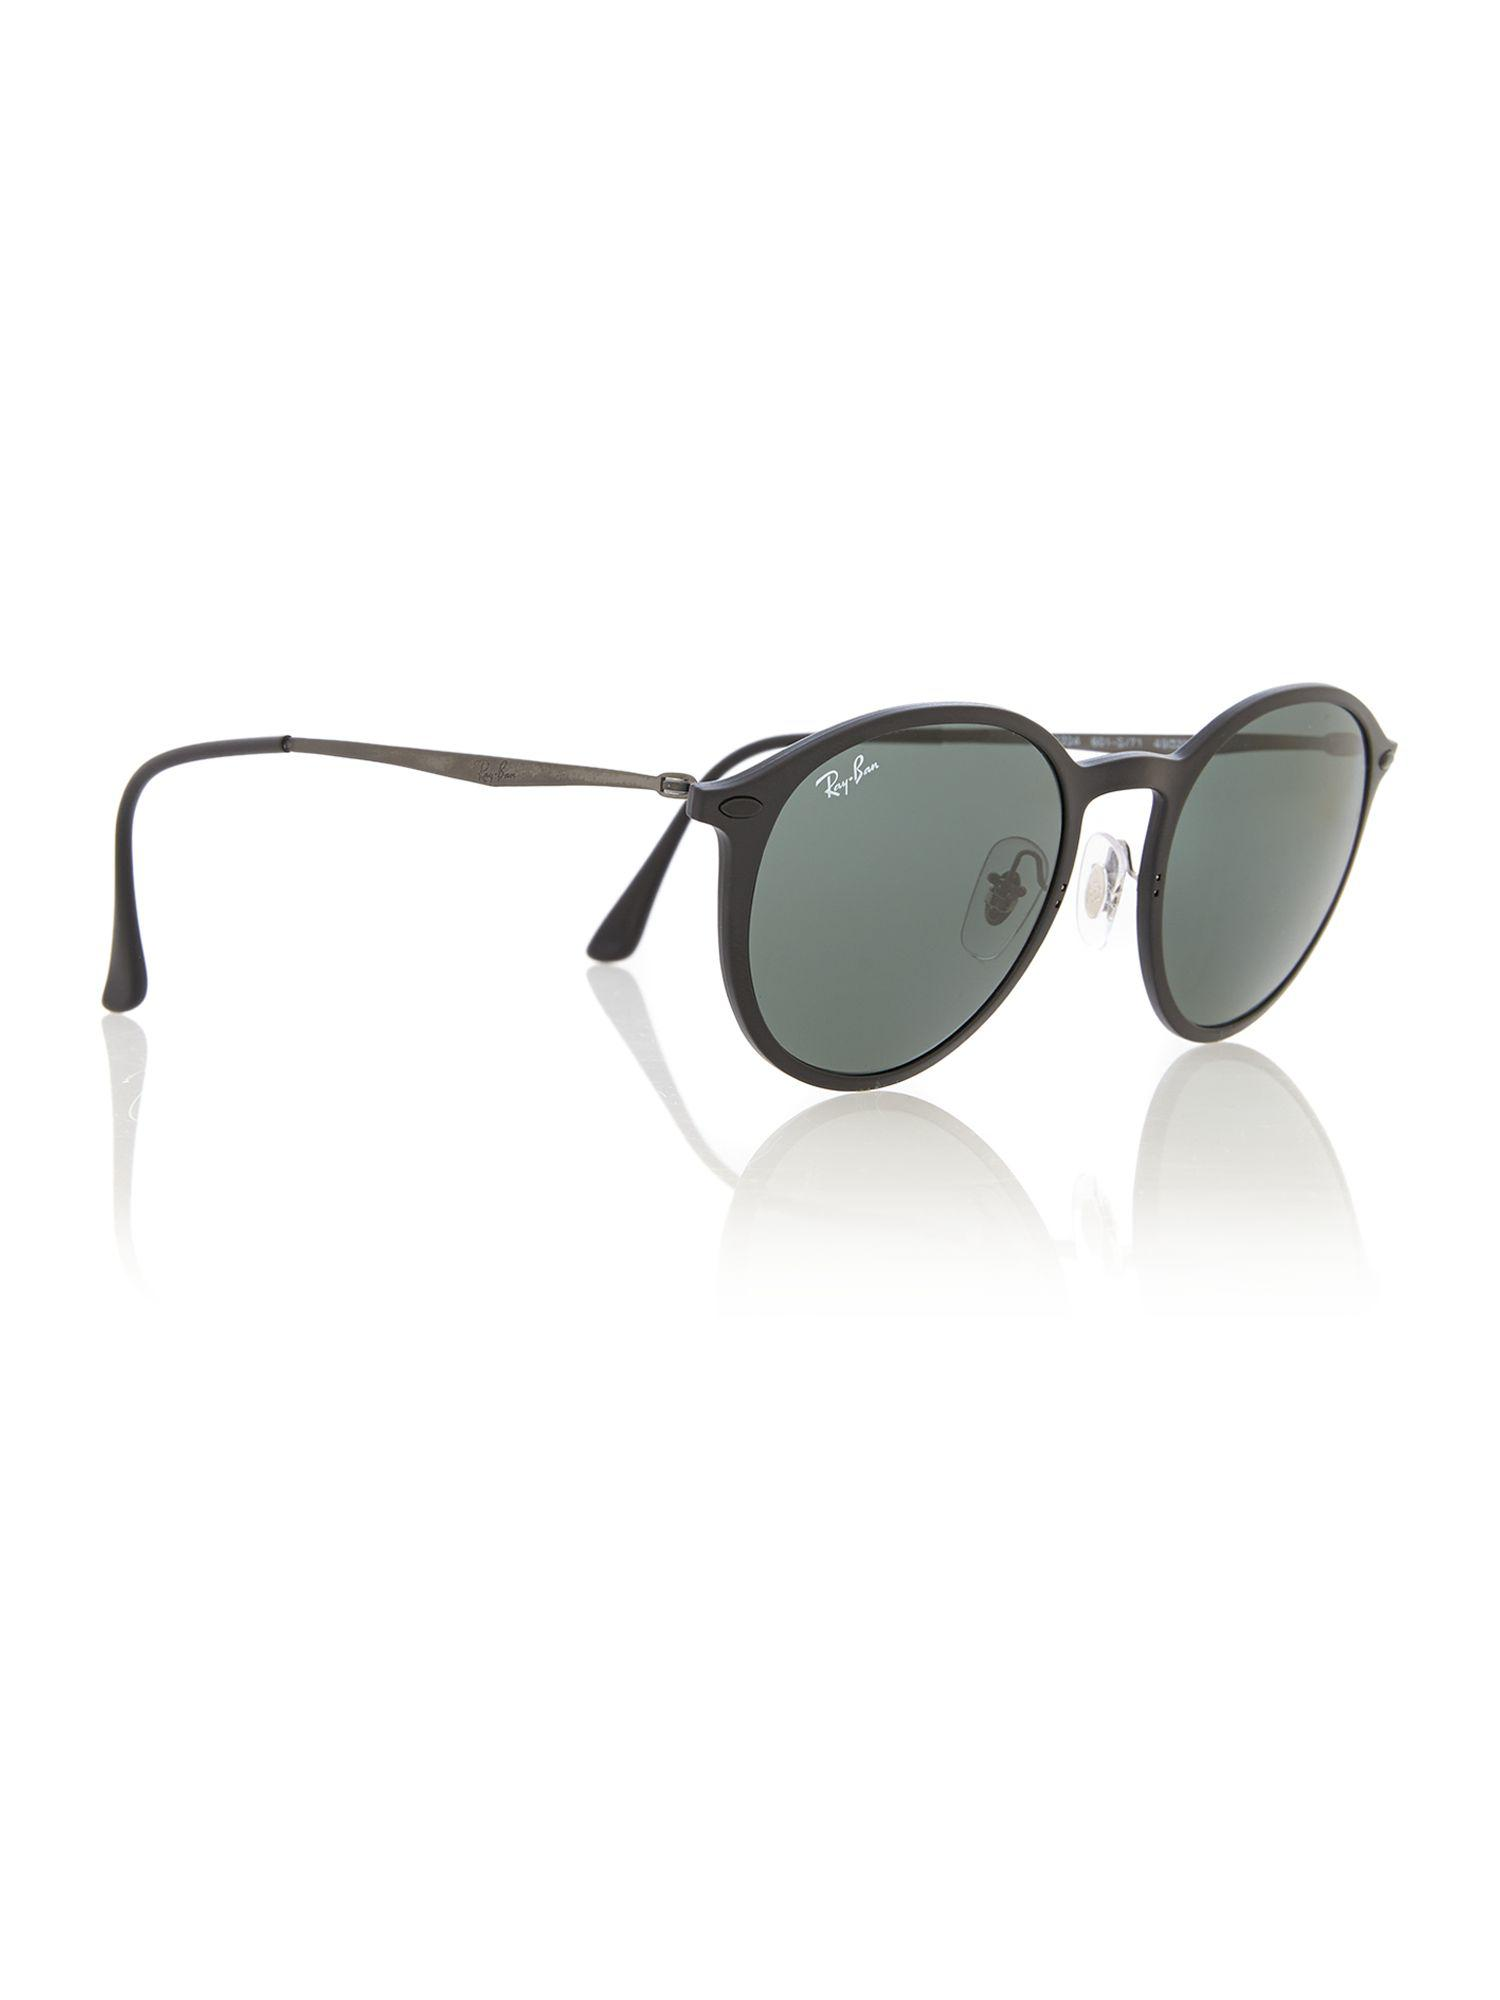 b473bdacaf1 Ray-Ban Rb4224 Round Sunglasses in Gray for Men - Lyst